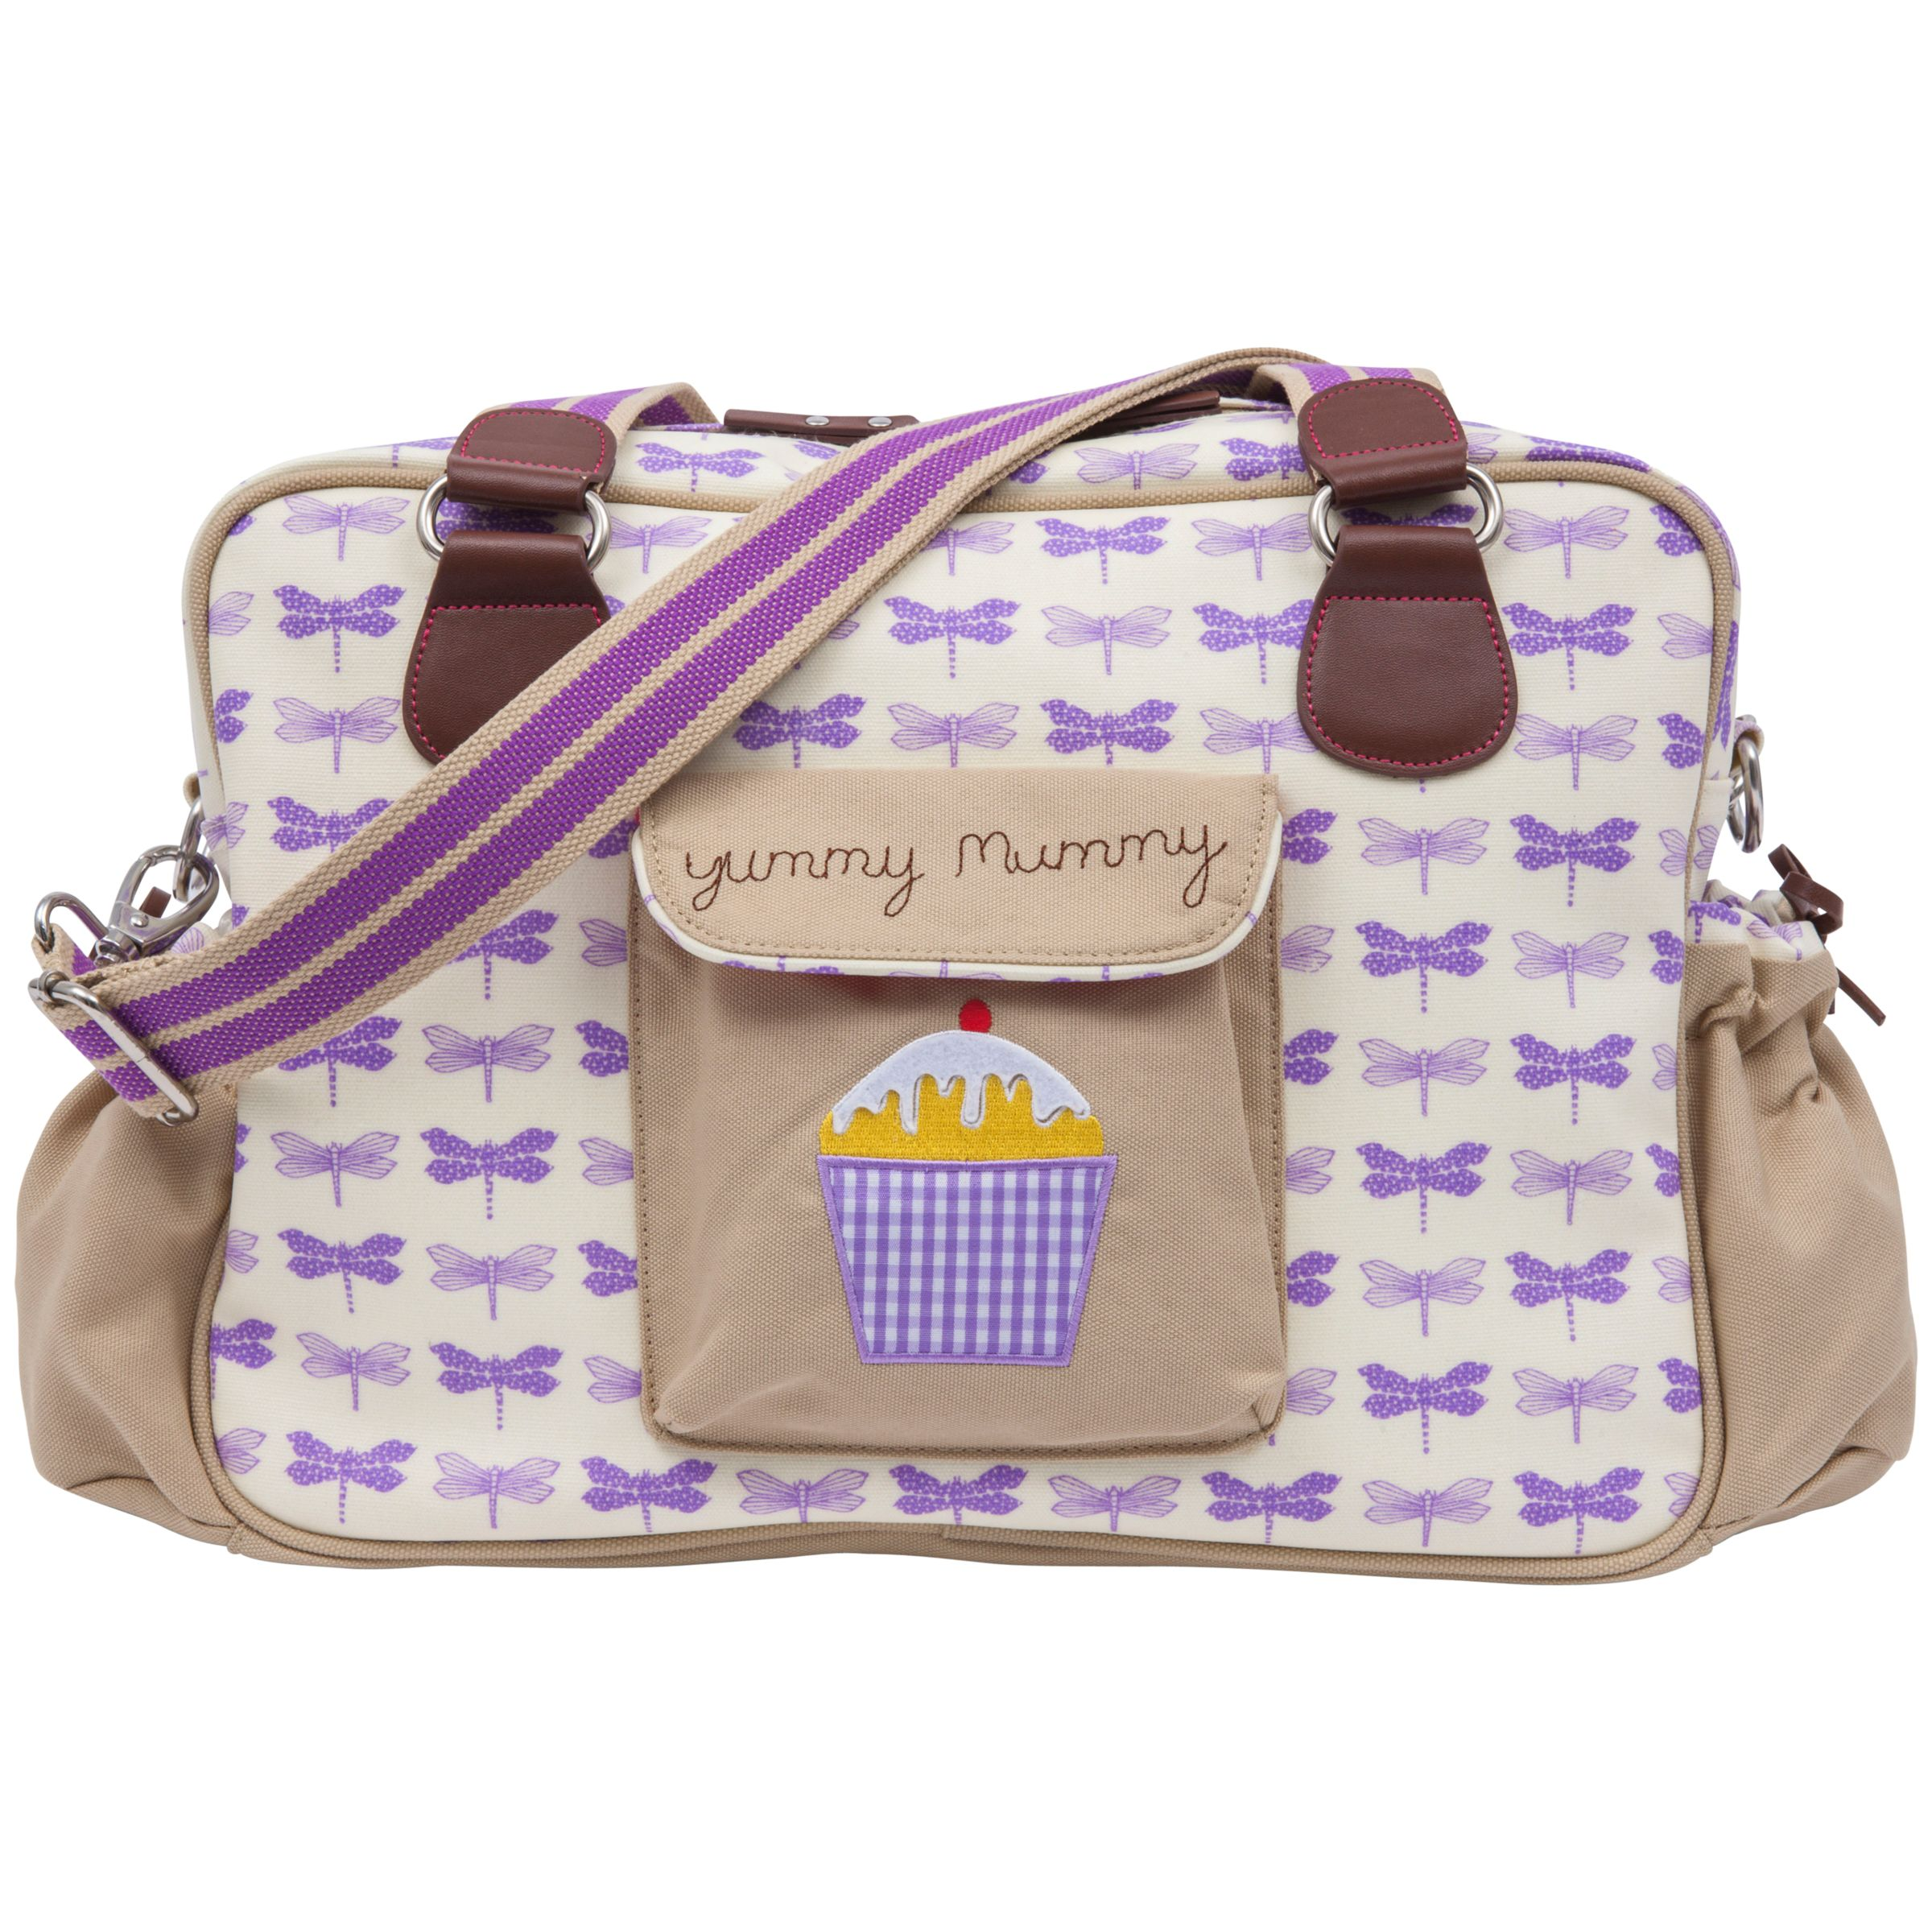 Pink Lining Yummy Mummy Changing Bag Purple Dragonfly